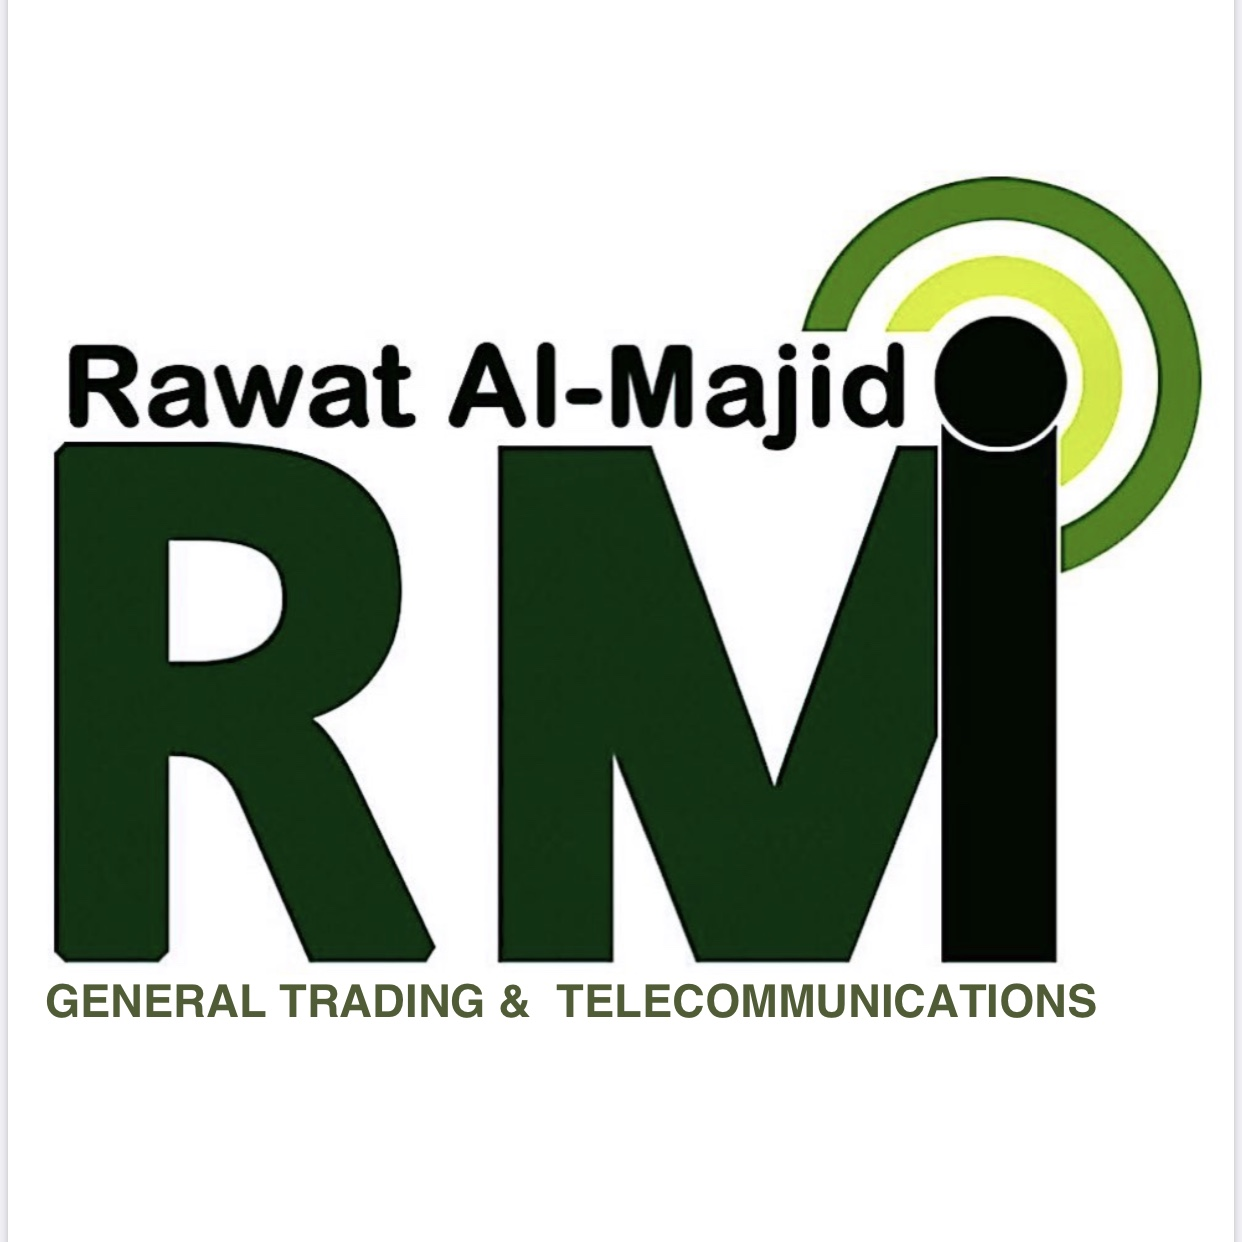 for ganeral trading &communications